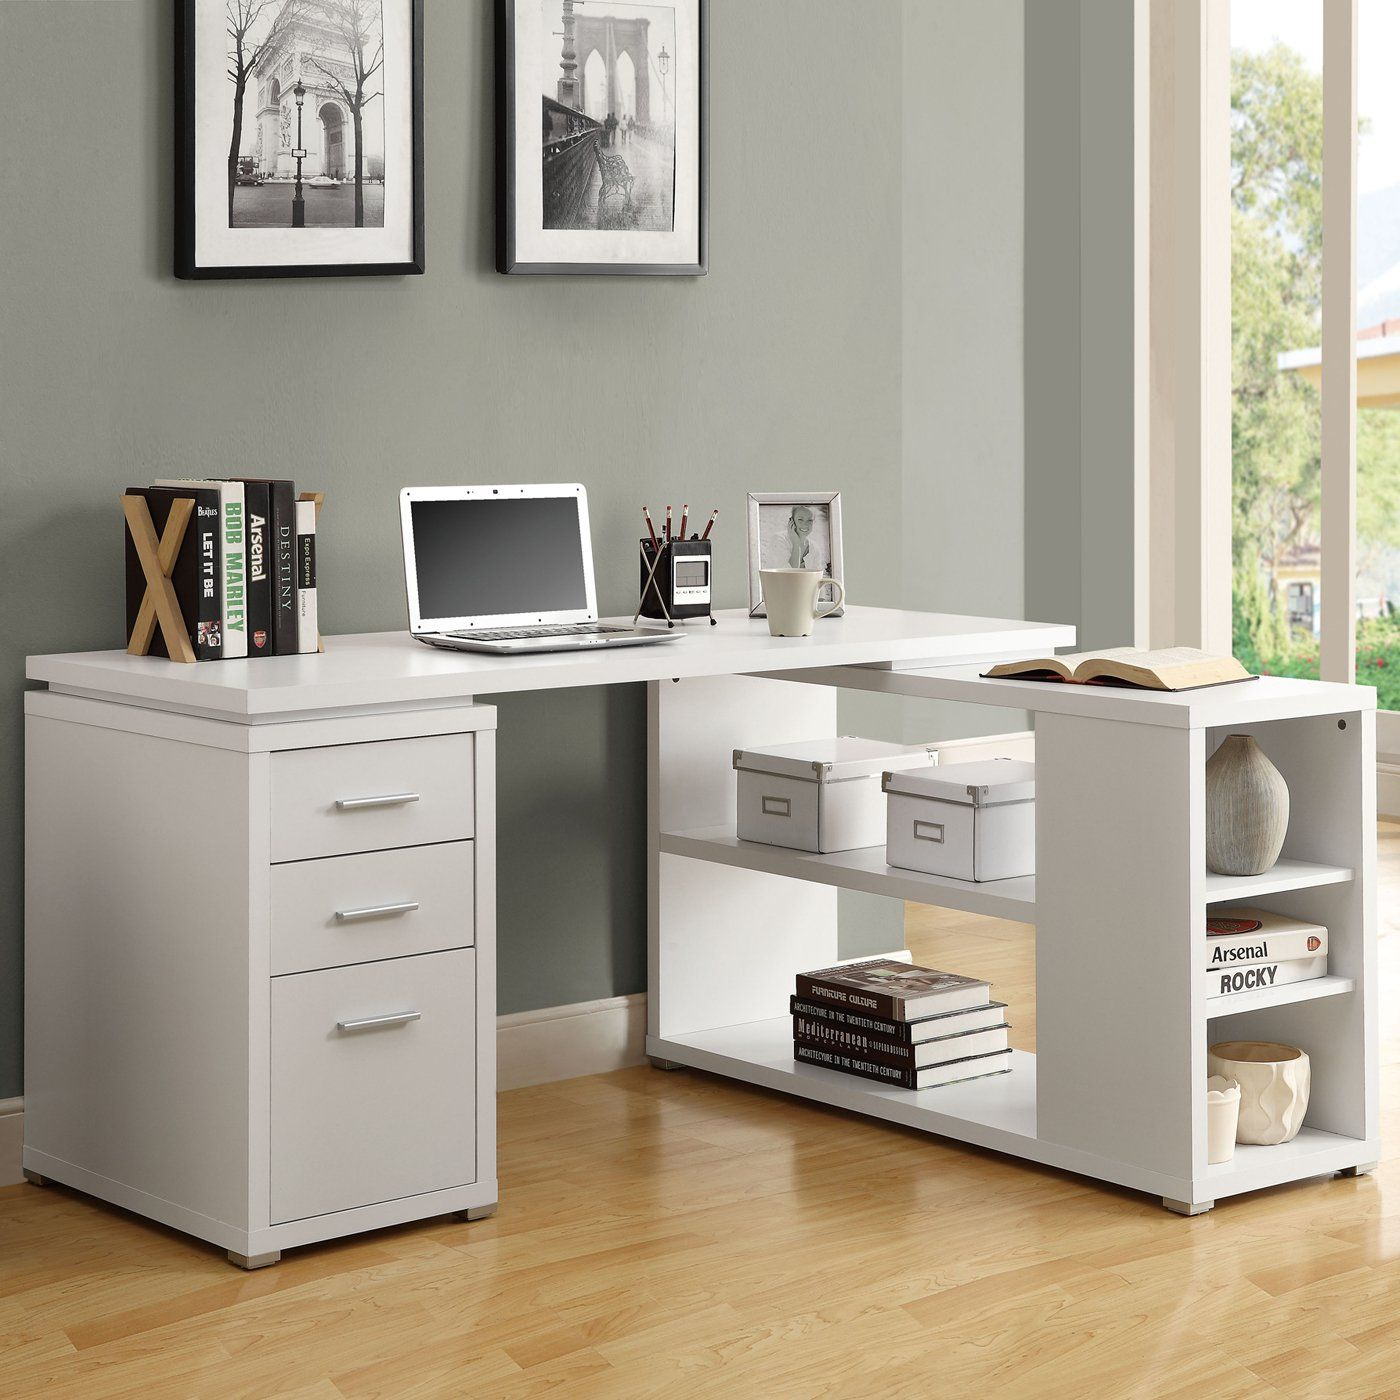 A white multifunctional desk that can be placed on the